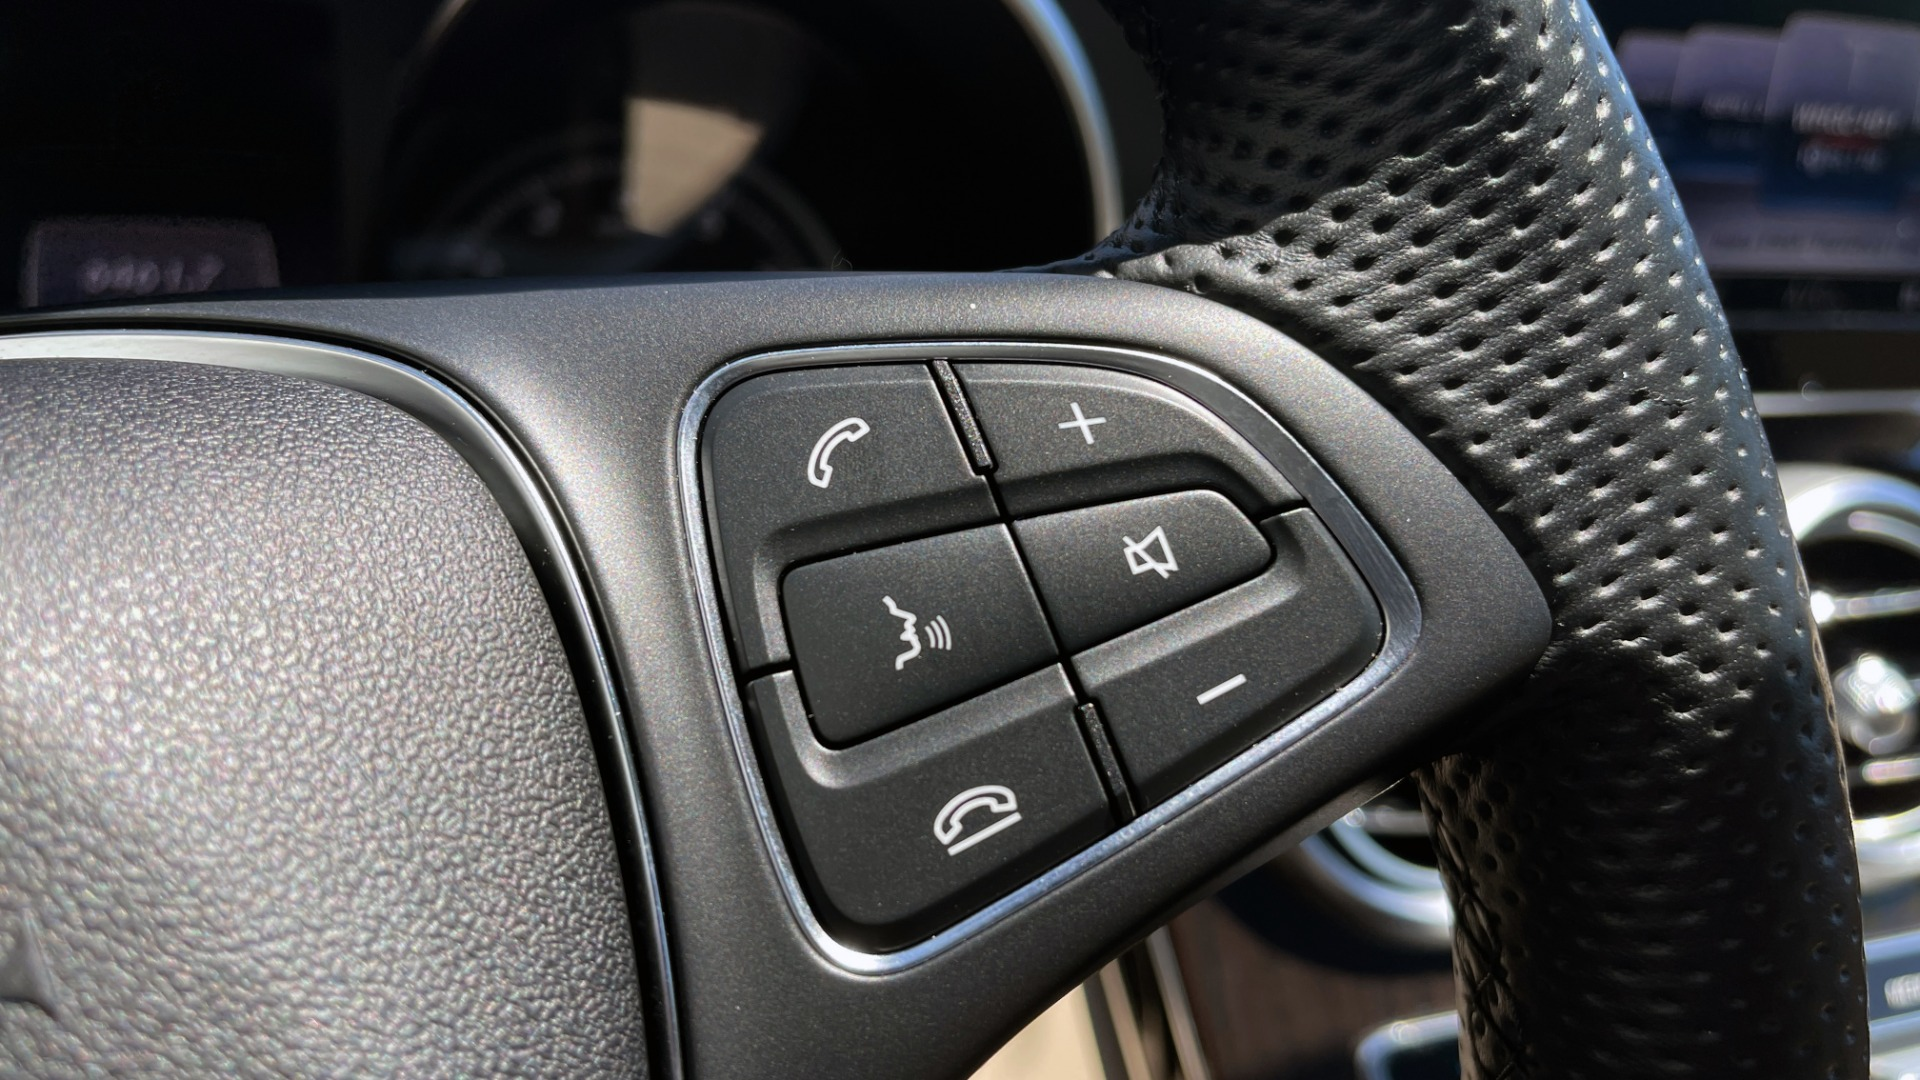 Used 2018 Mercedes-Benz C-CLASS C 300 PREMIUM / KEYLESS-GO / PANO-ROOF / BURMESTER / REARVIEW for sale $29,495 at Formula Imports in Charlotte NC 28227 39